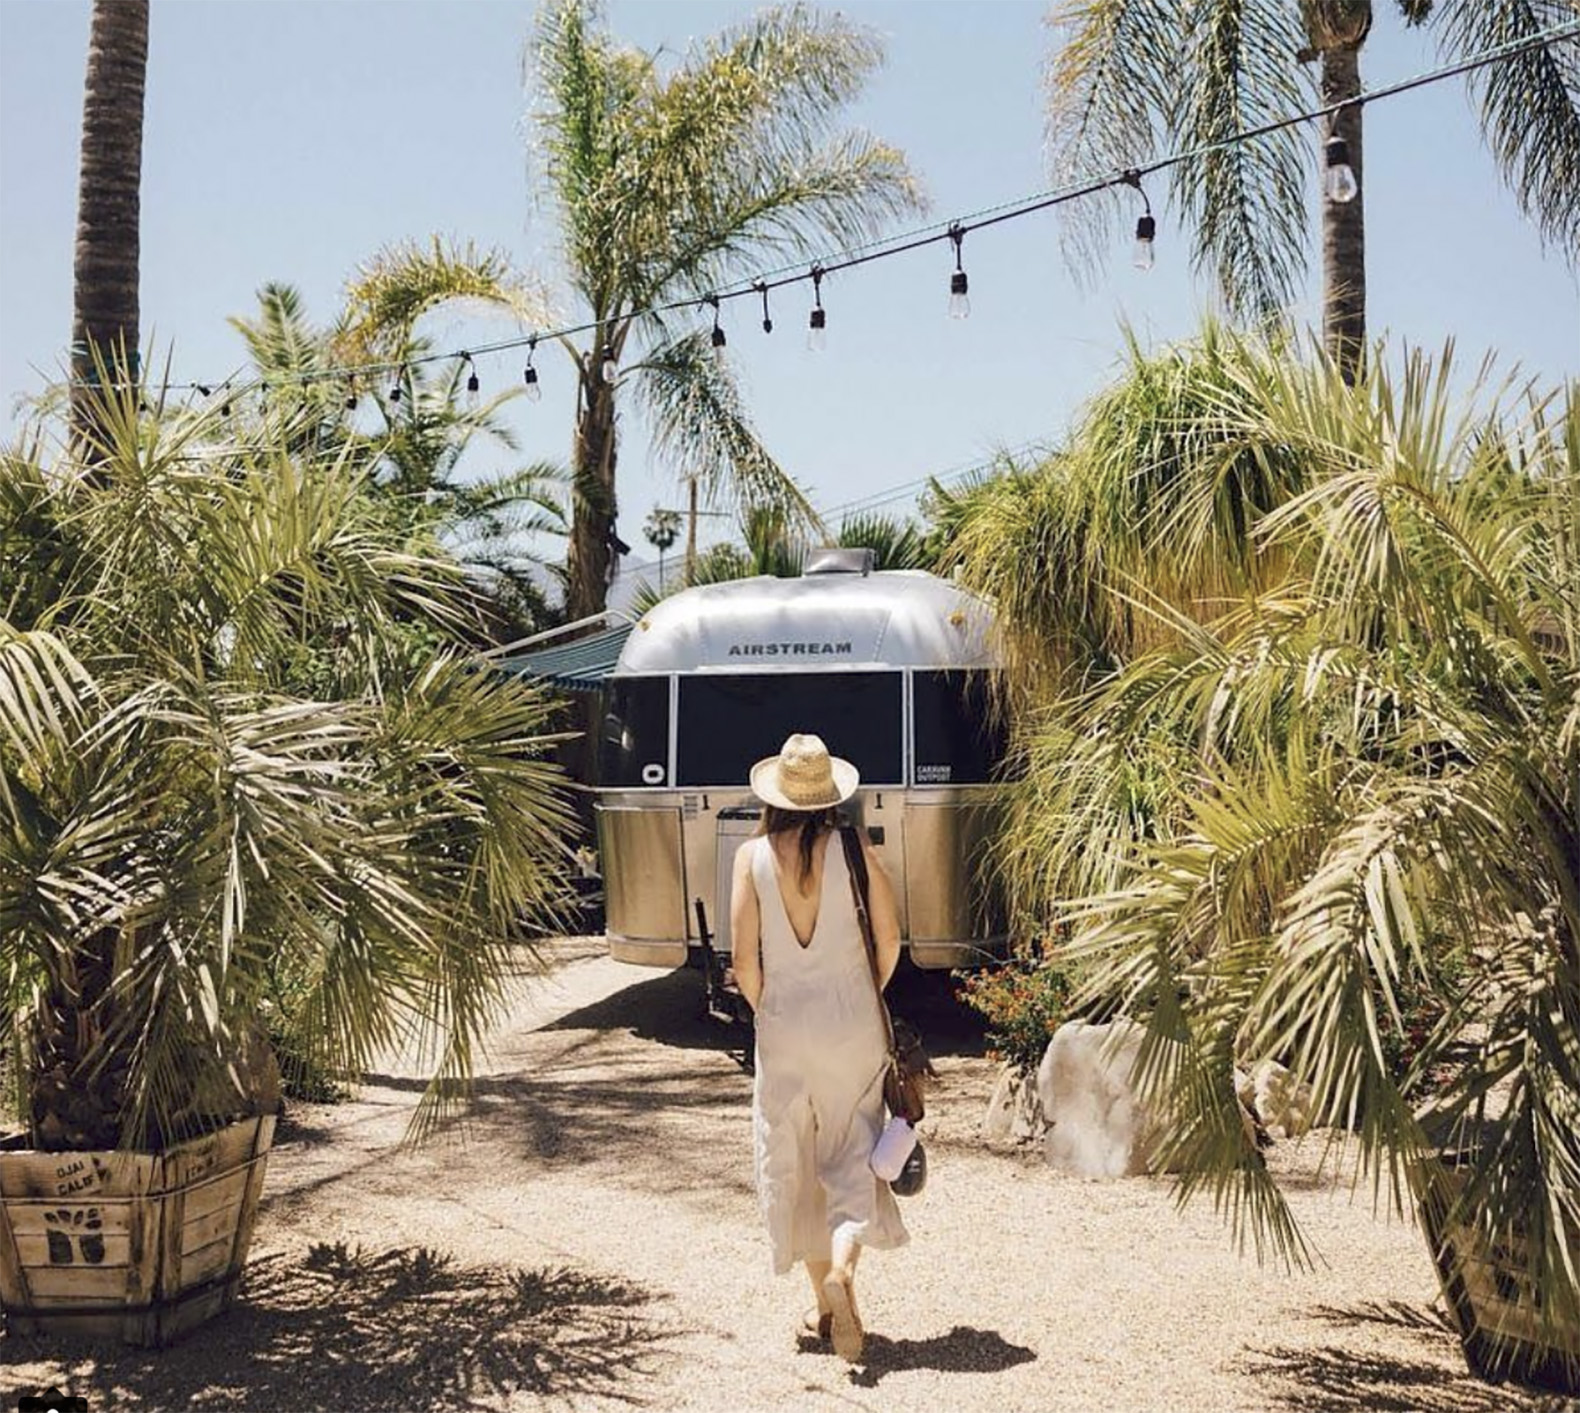 This dreamy boutique hotel in California is made up of 11 refurbished Airstreams